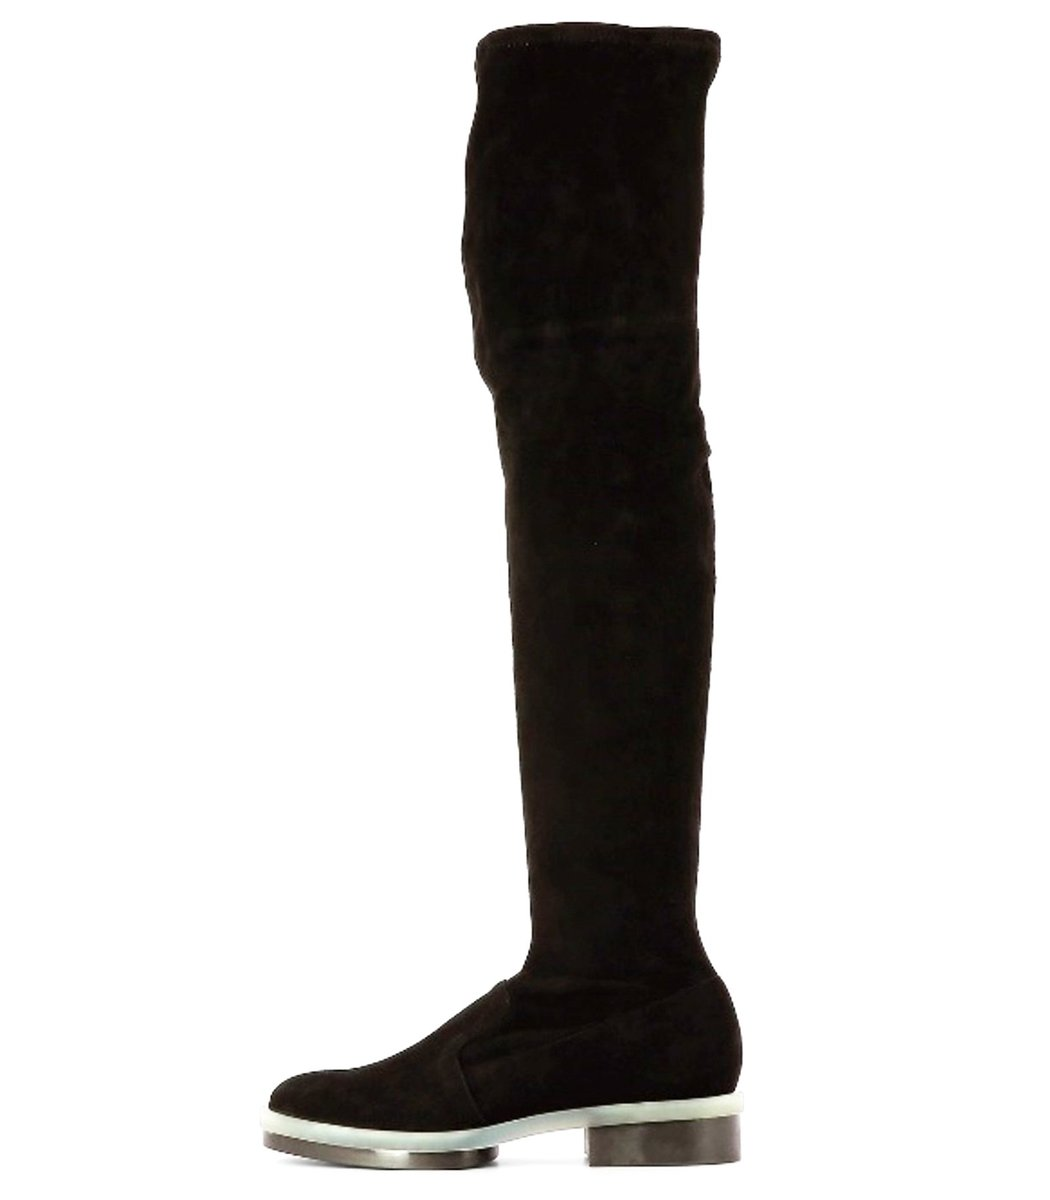 Clergerie Rock A4 Leather Stretch Boots in Black